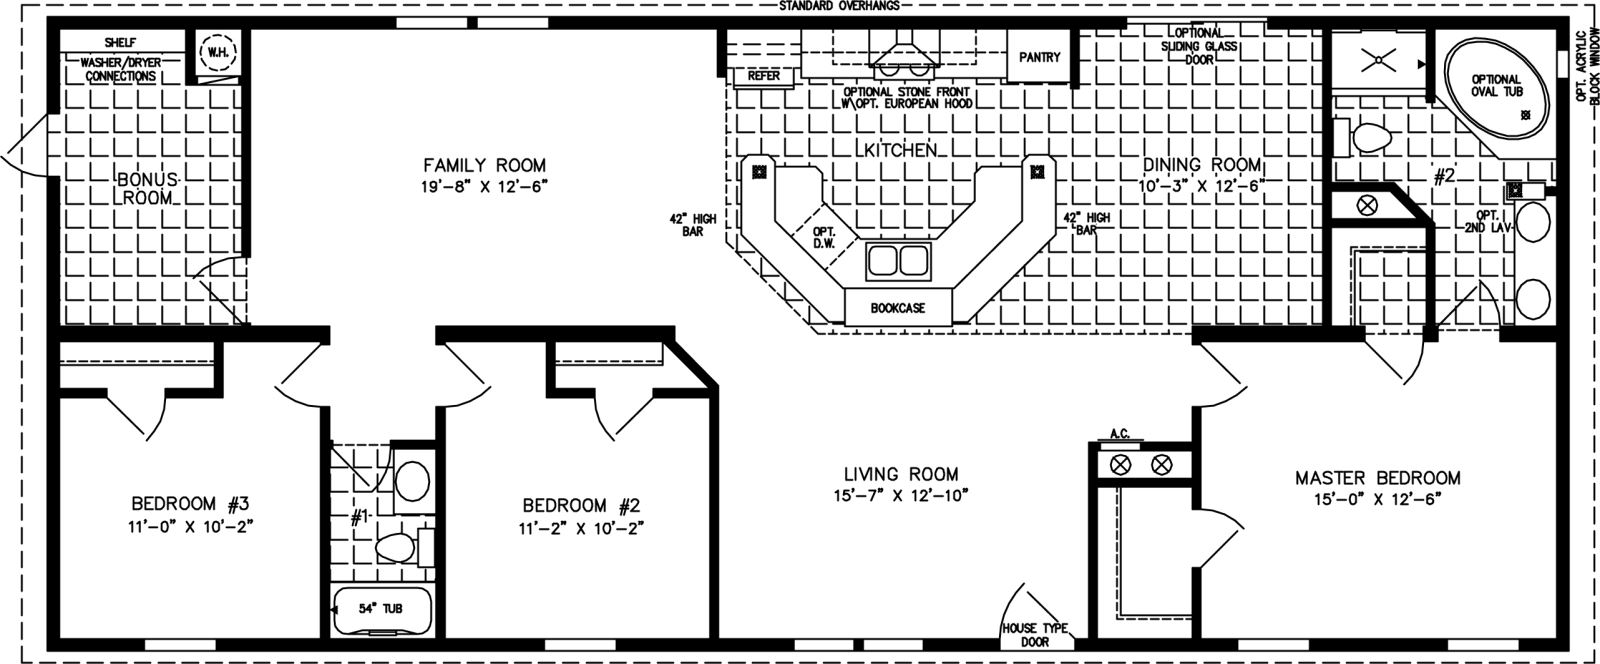 1600 to 1799 sq ft manufactured home floor plans for 3000 sq ft apartment floor plan